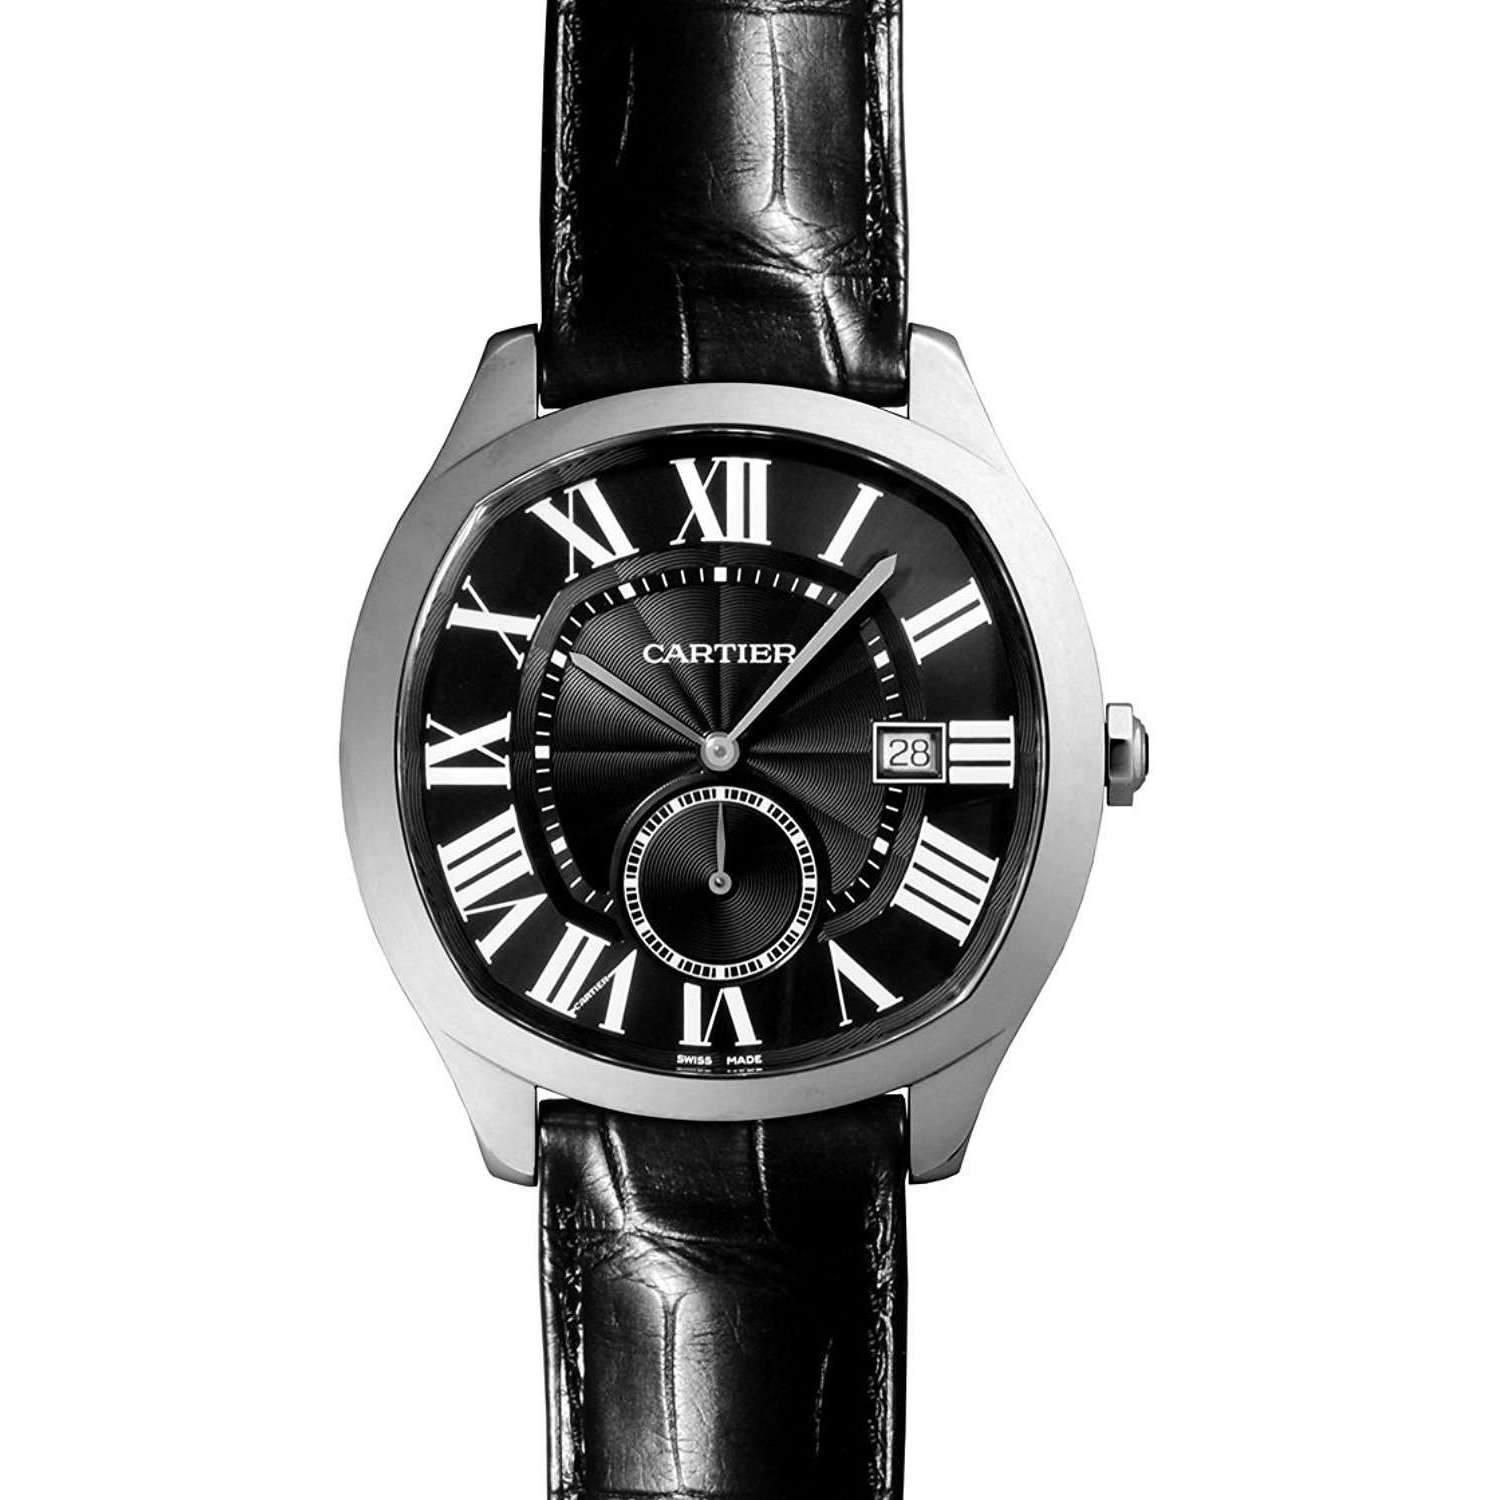 CARTIER DRIVE AUTOMATIC GREY DIAL MEN WATCH WSNM0009 - ROOK JAPAN